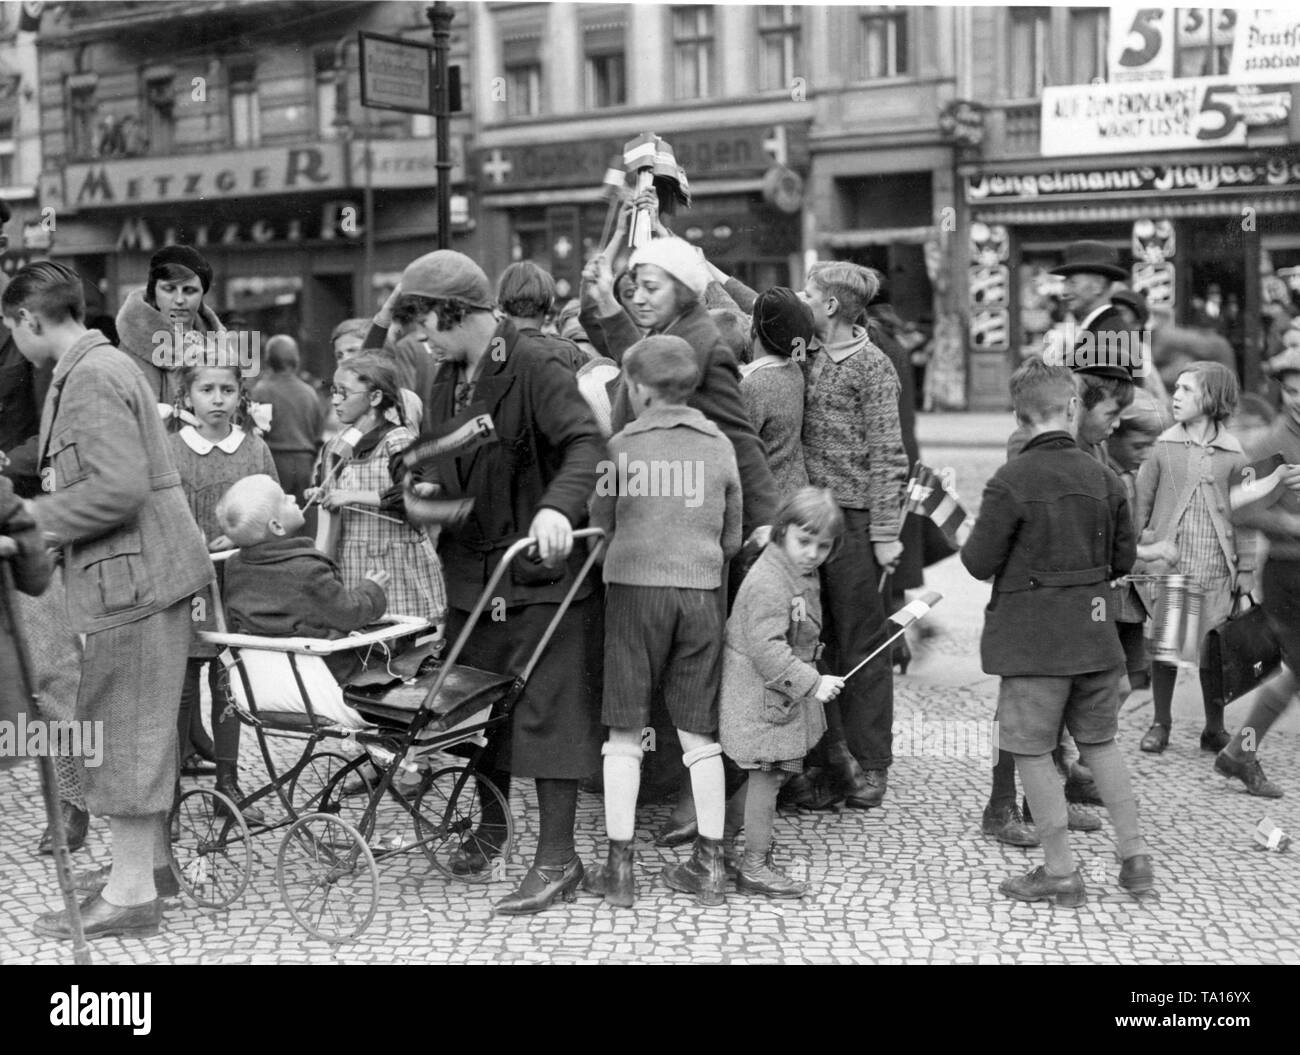 As an election campaign, the Bismarck Youth distributes black-white-red flags in front of an agency in the borough of Neukoelln. - Stock Image